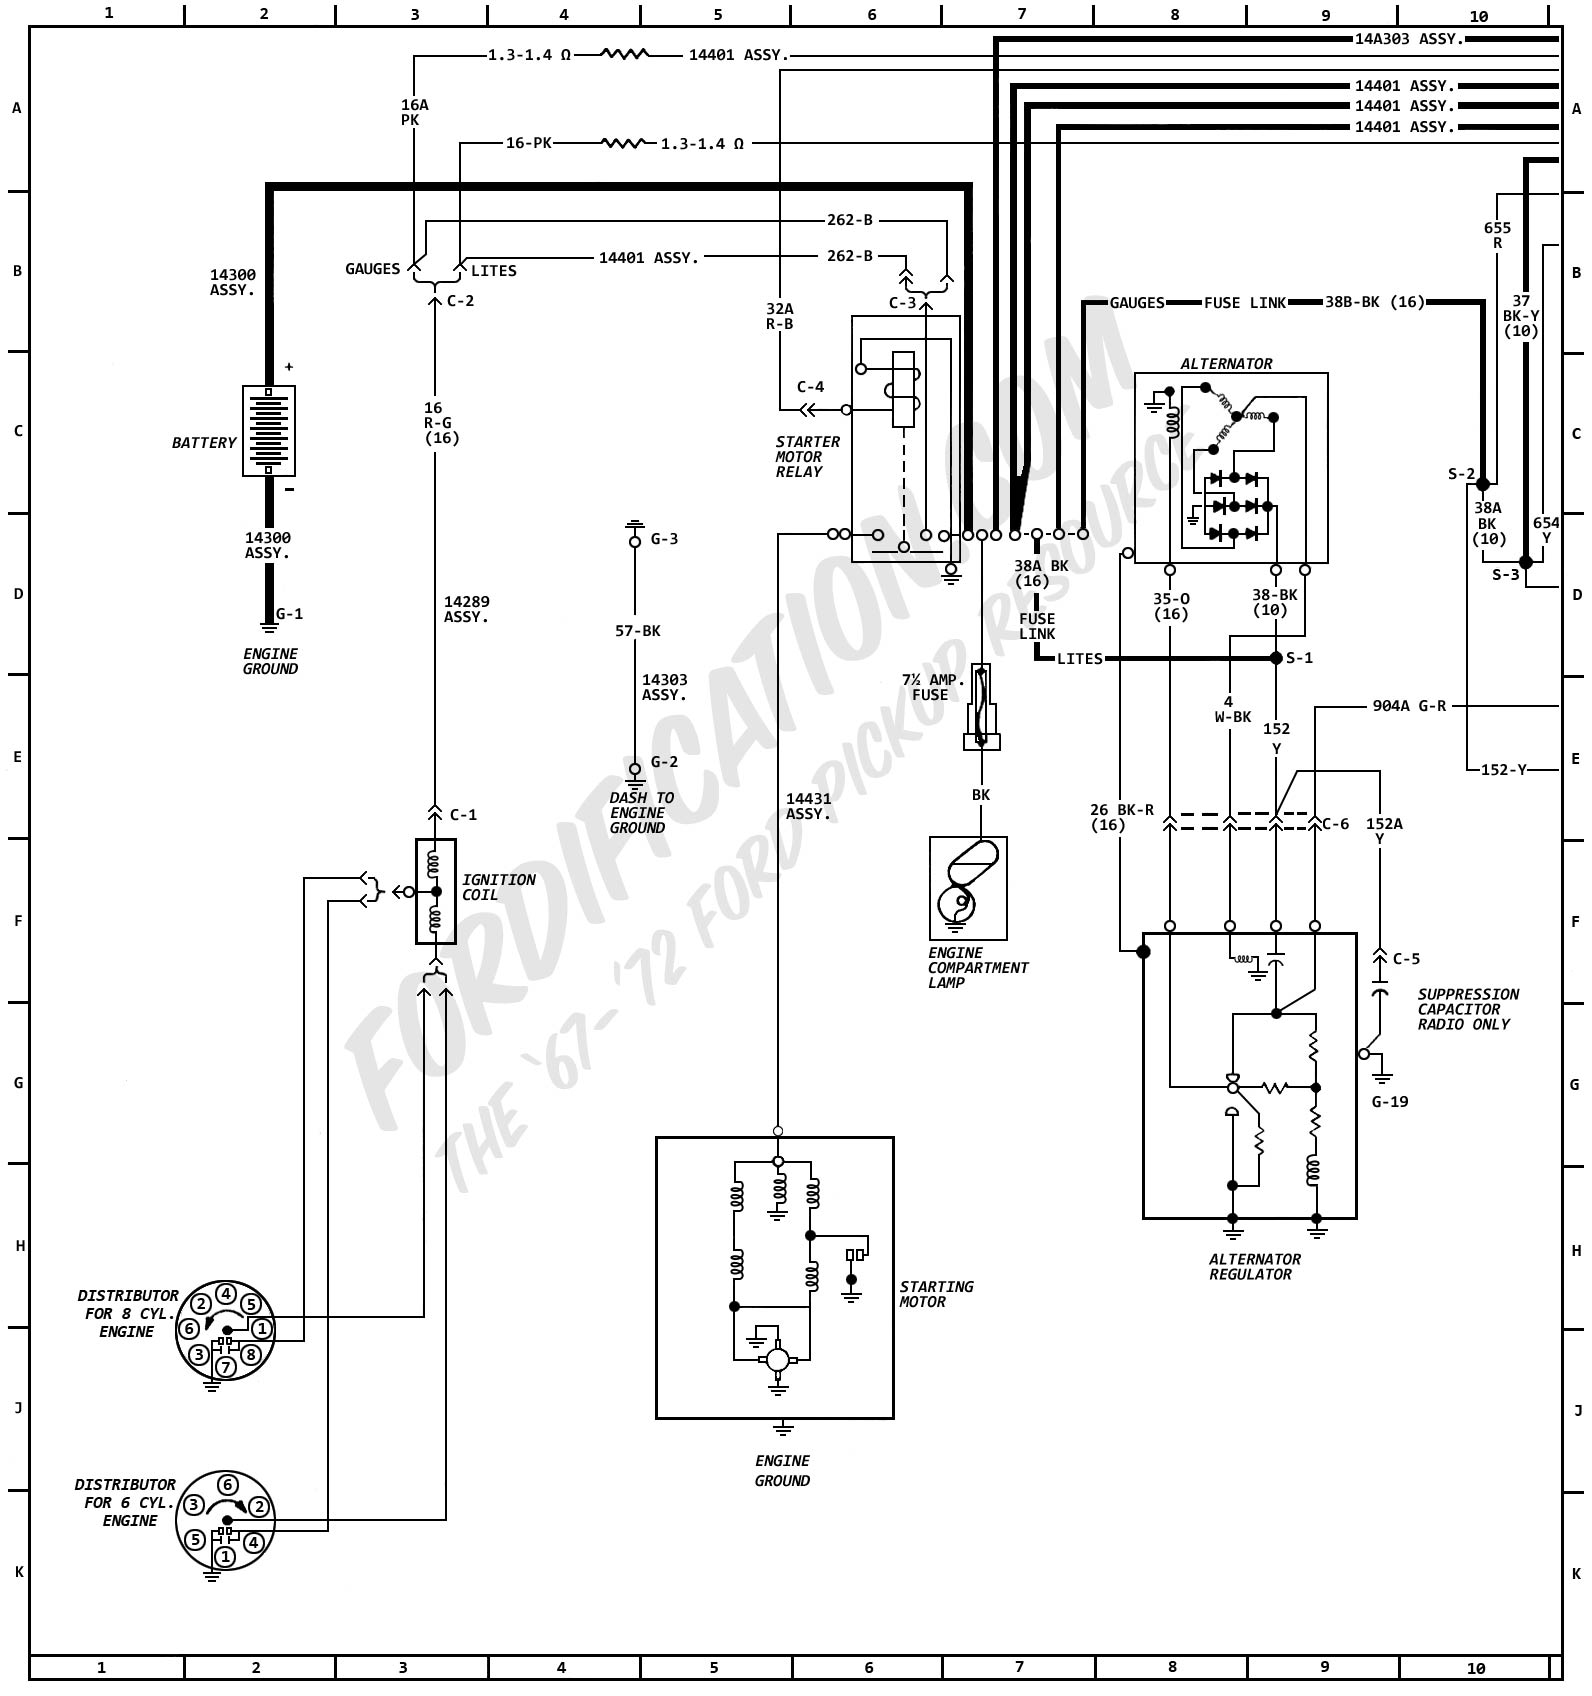 1972 ford truck wiring diagrams fordification com rh fordification com ford f100 wiring diagram 1972 1970 ford f100 wiring diagram